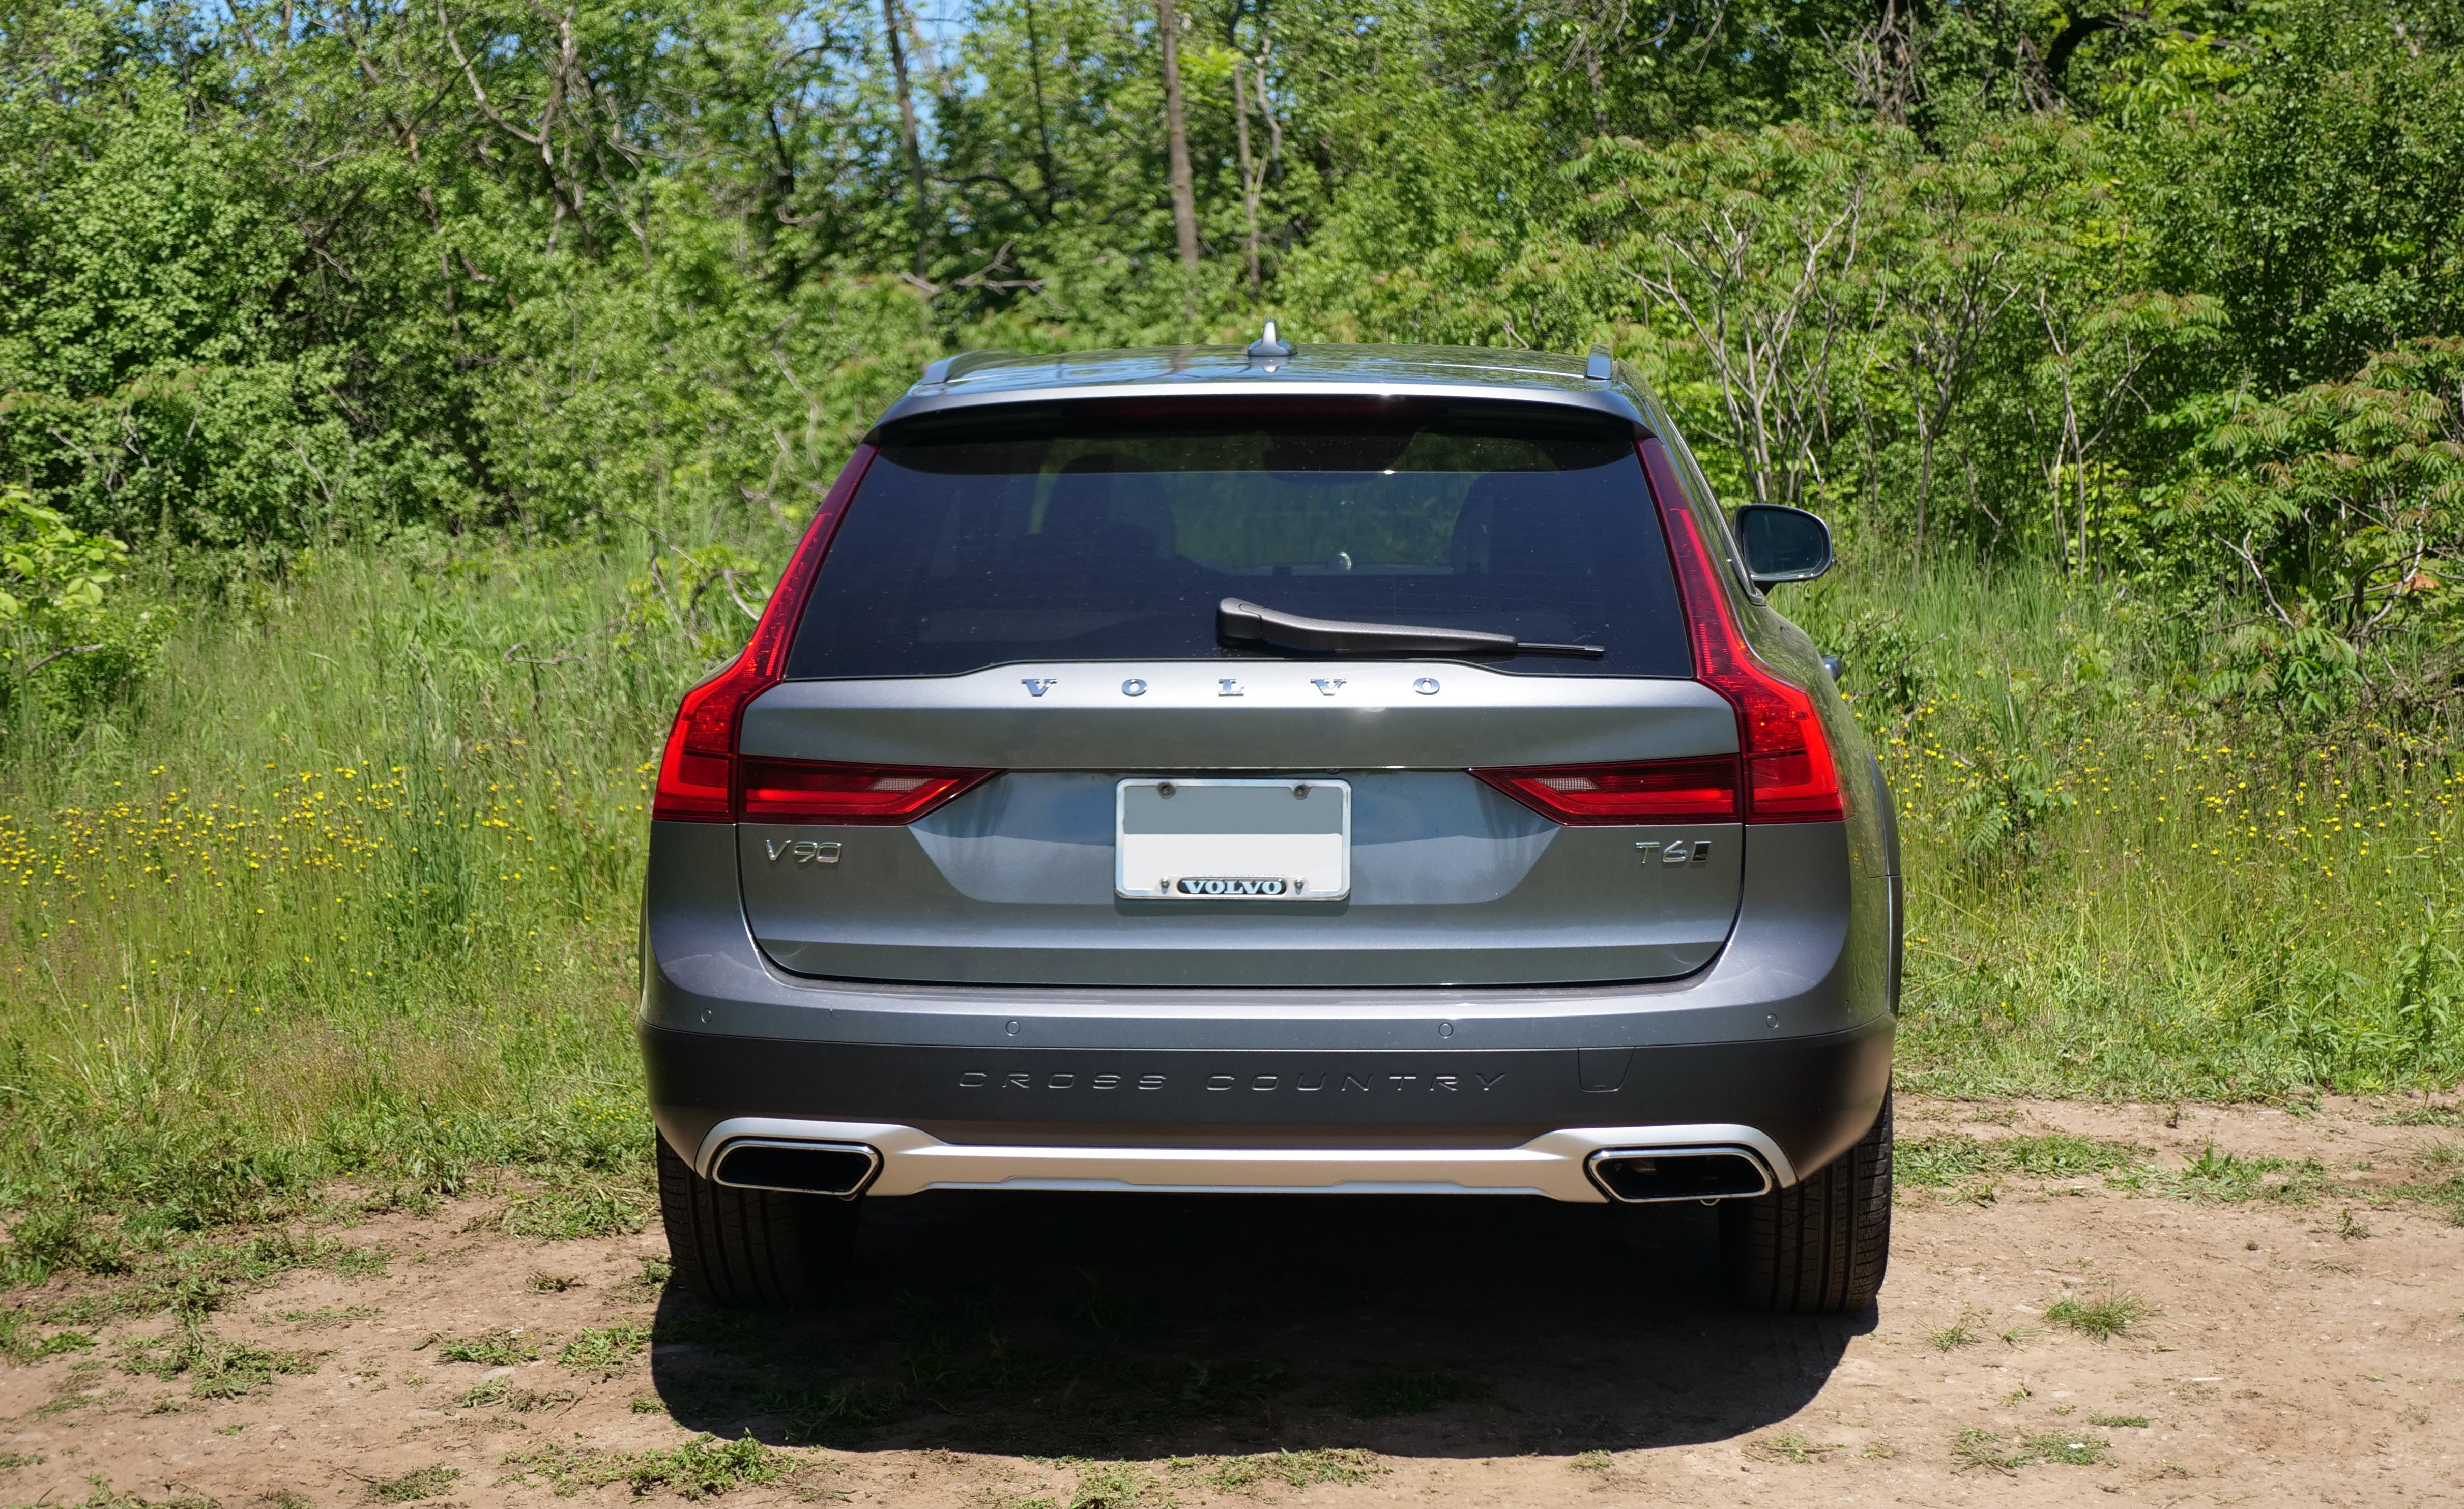 2017 Volvo V90 Cross Country Review - AutoGuide.com